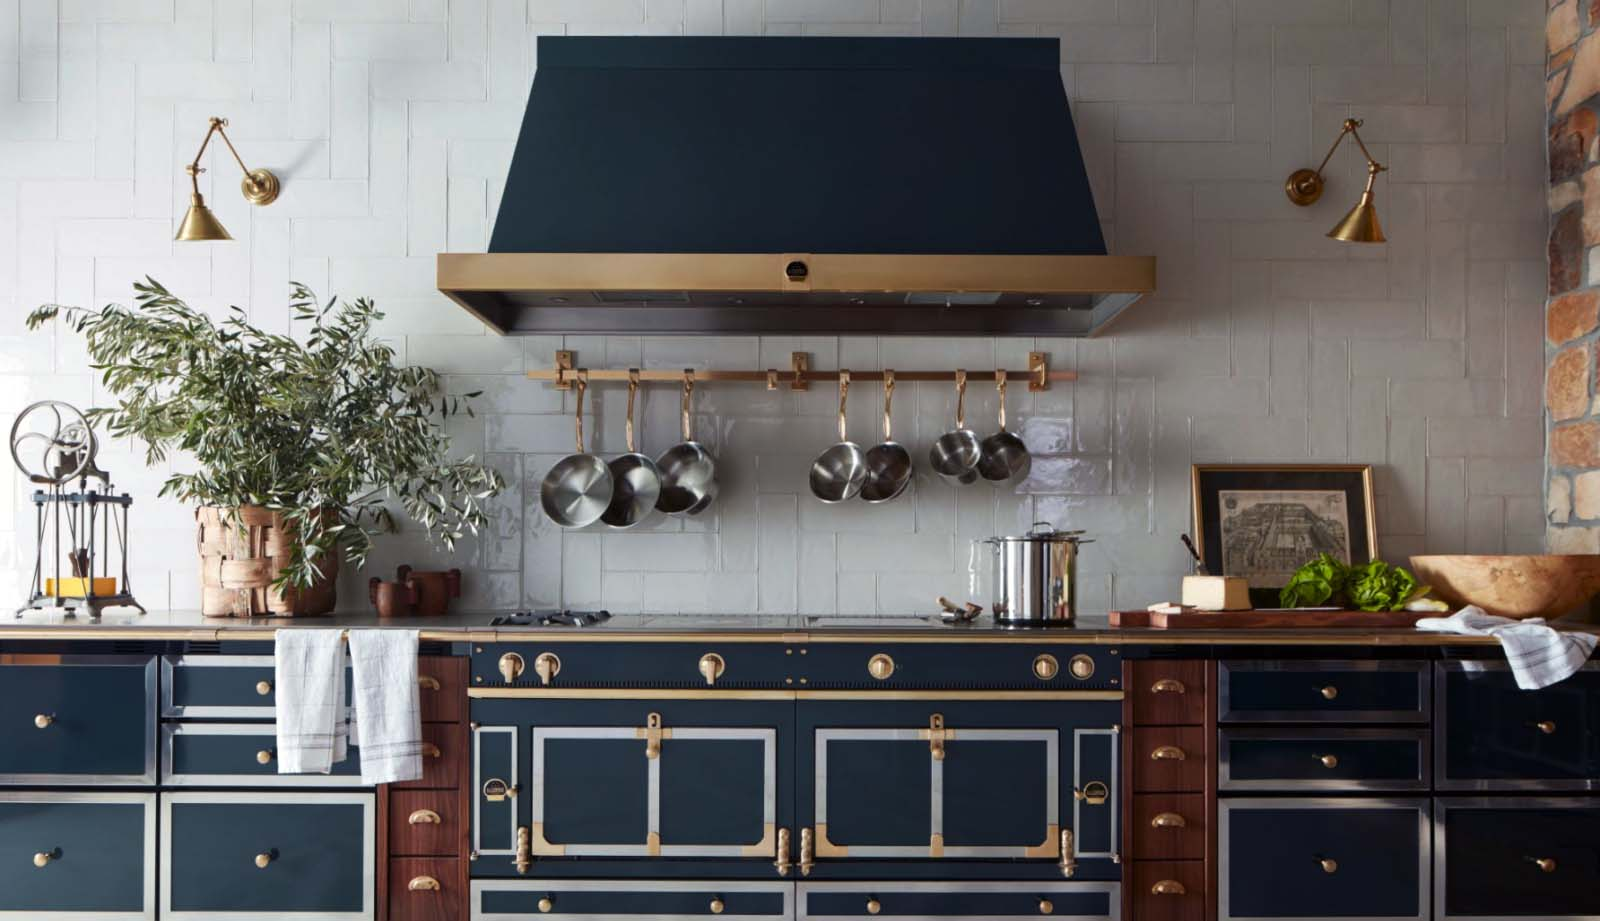 high end appliances la cornue luxury kithcen dark blue range with custom hood gold accents